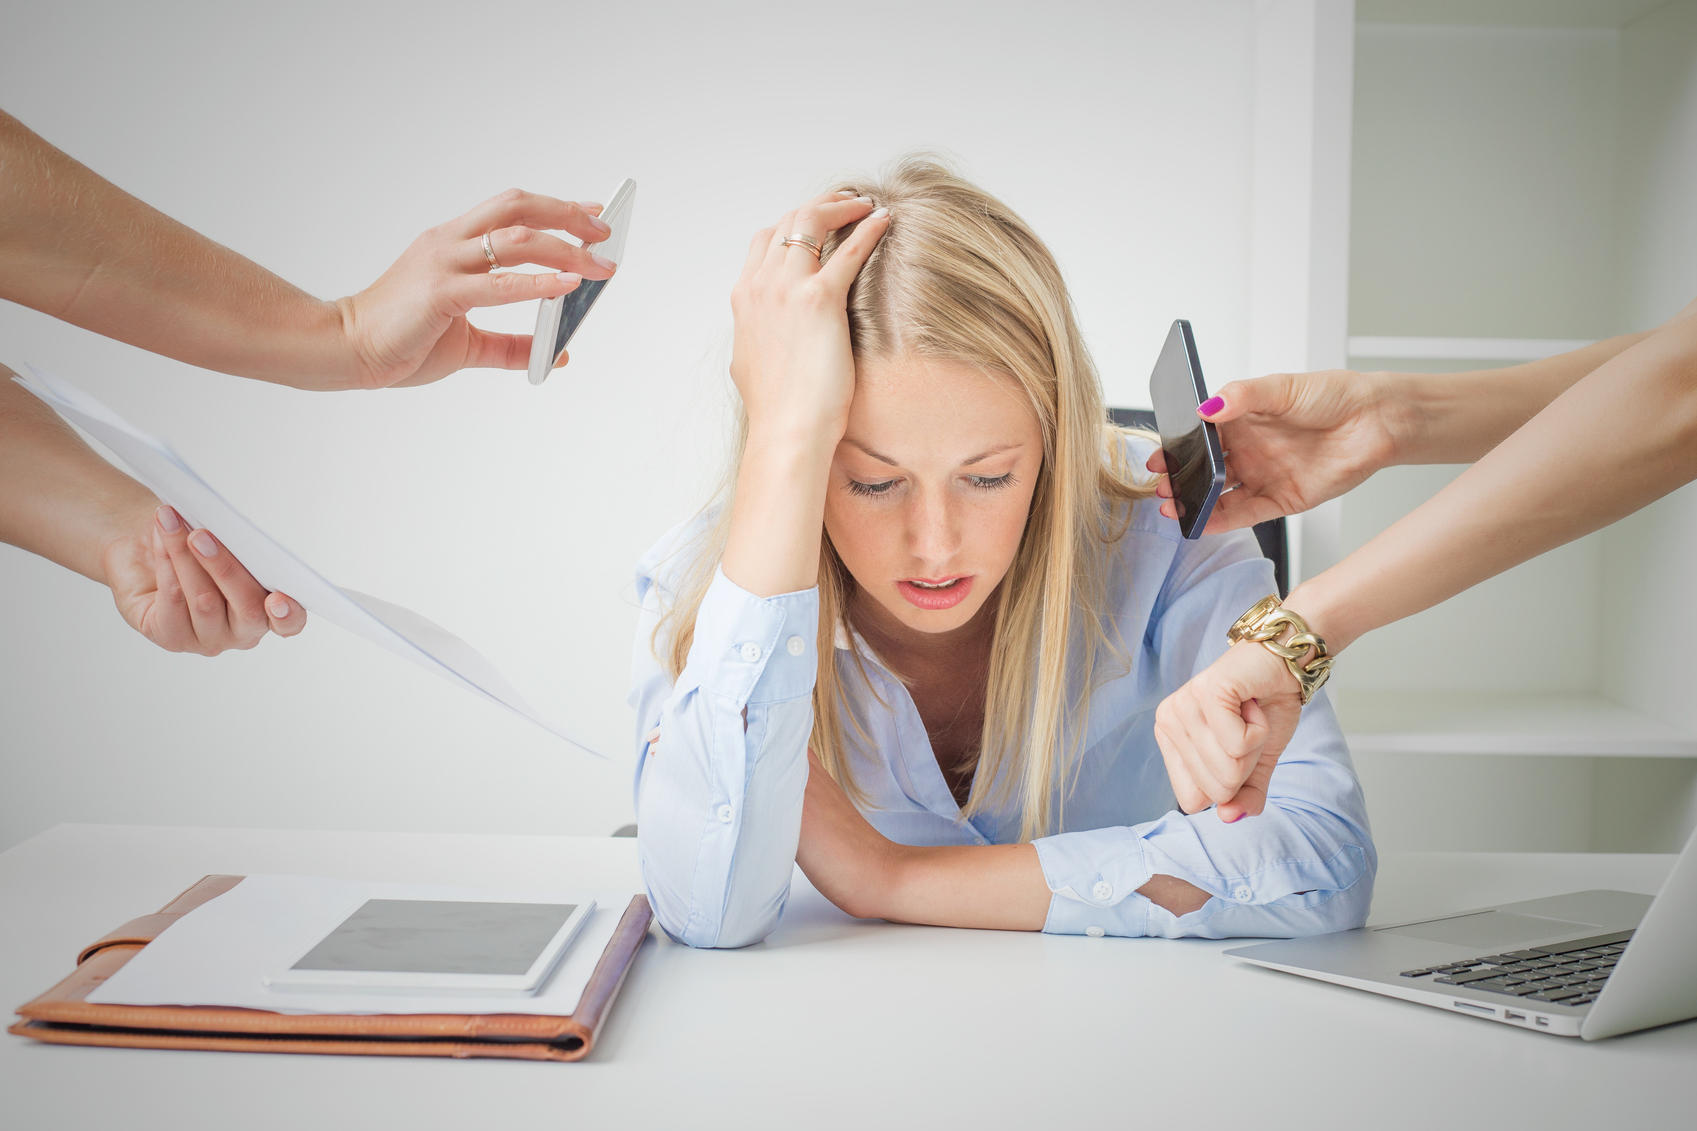 Woman work issues: woman overloaded with stuff at work